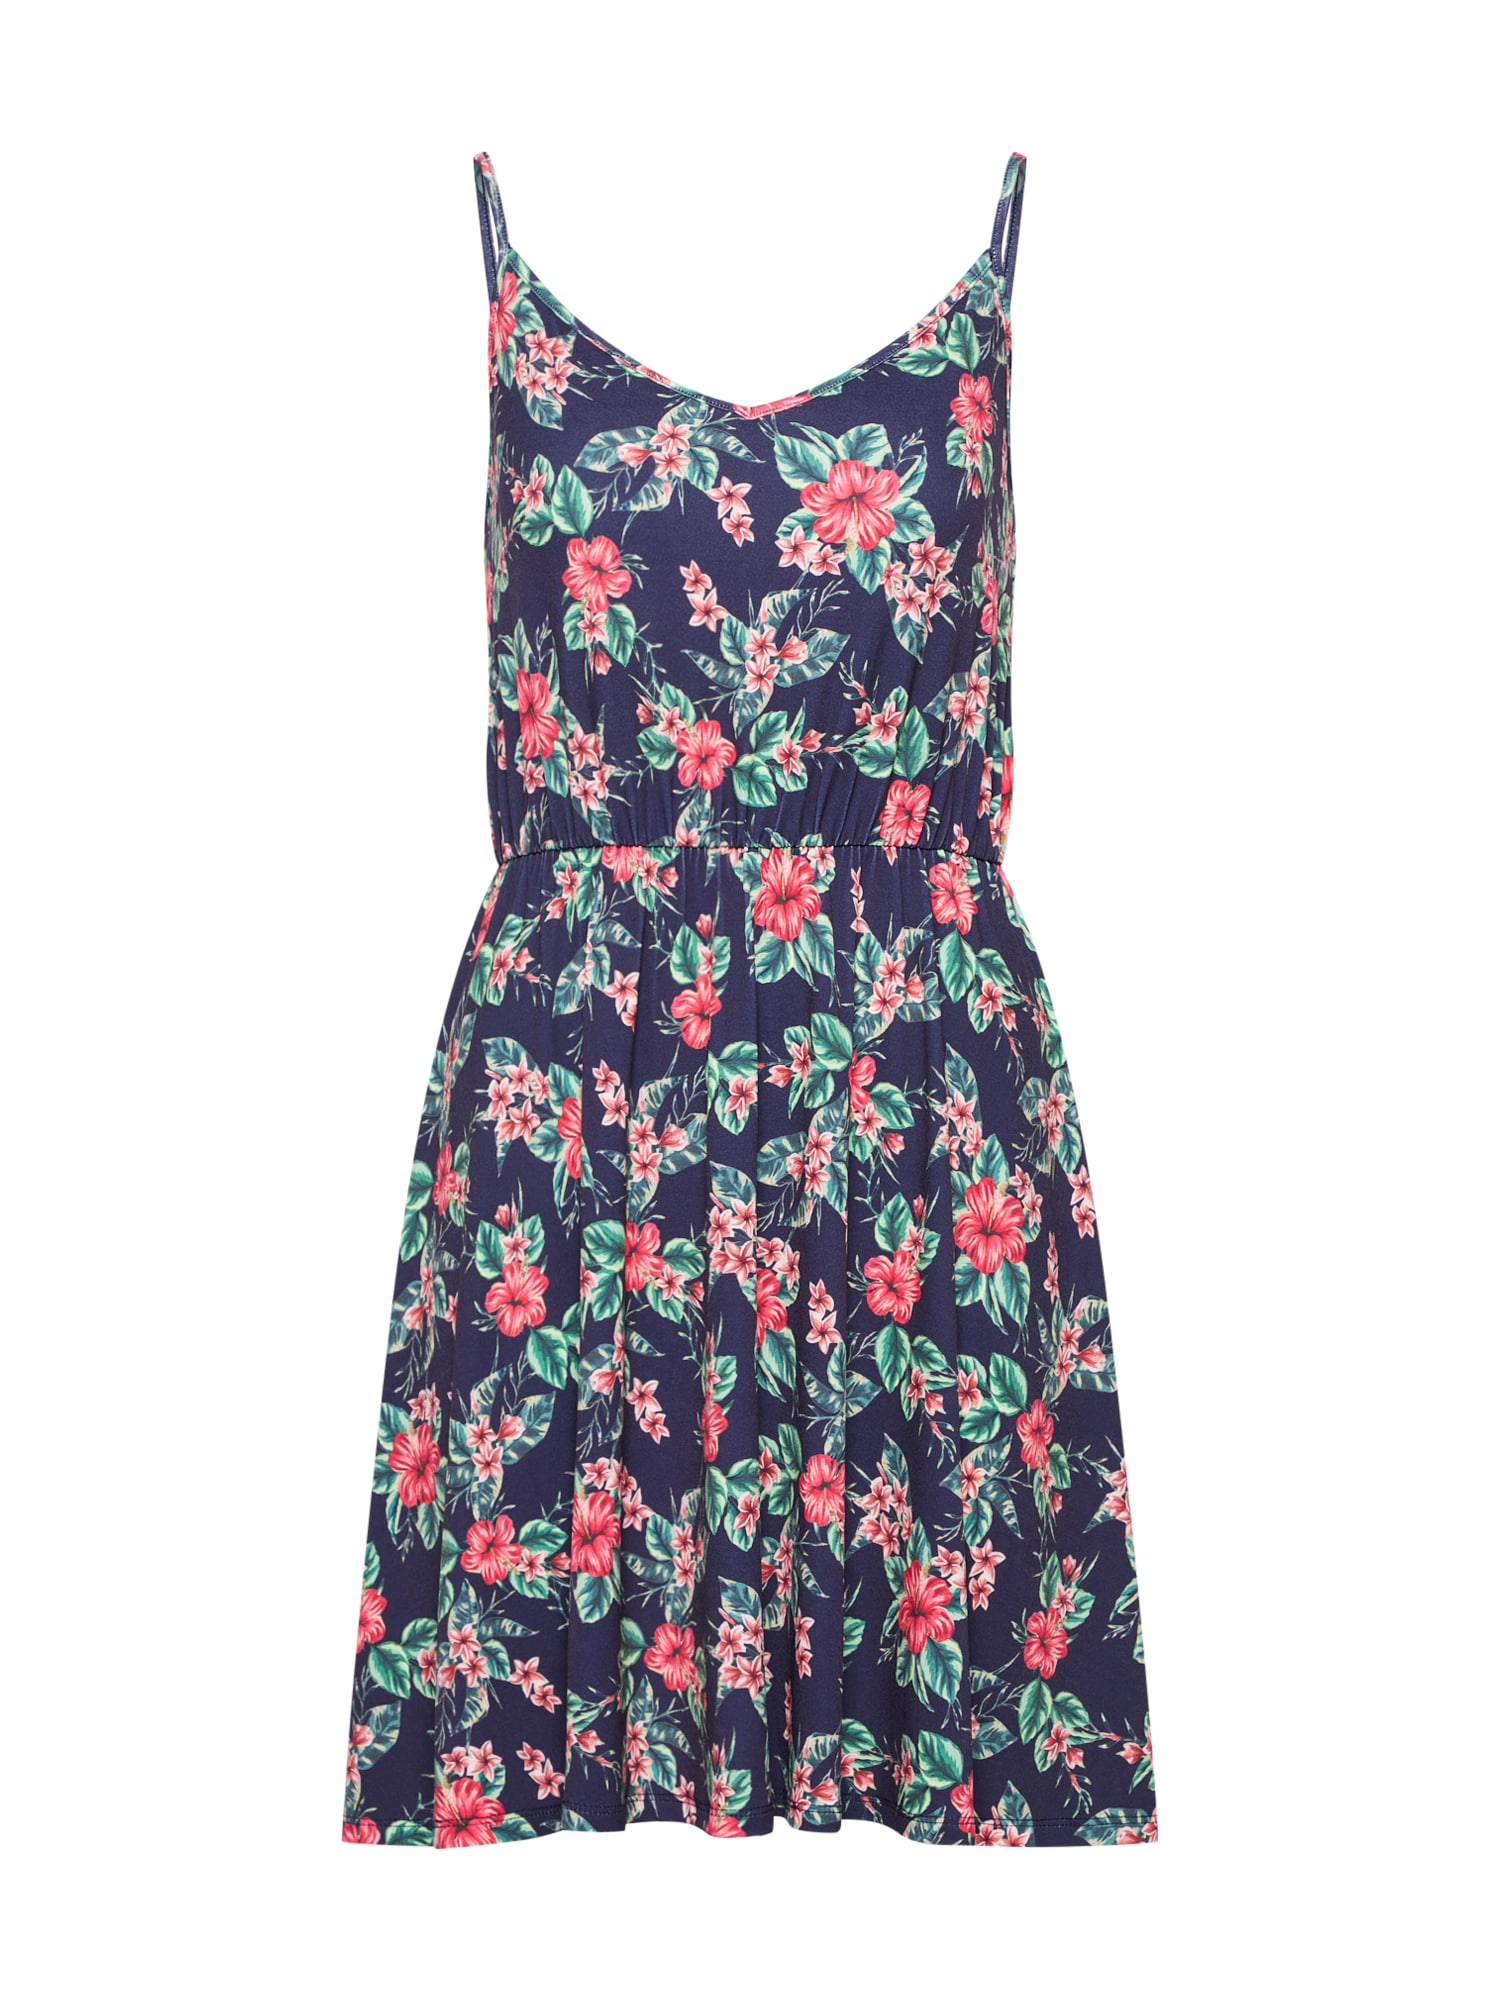 ABOUT YOU Zomerjurk 'Nicoletta' navy / mintgroen / vuurrood